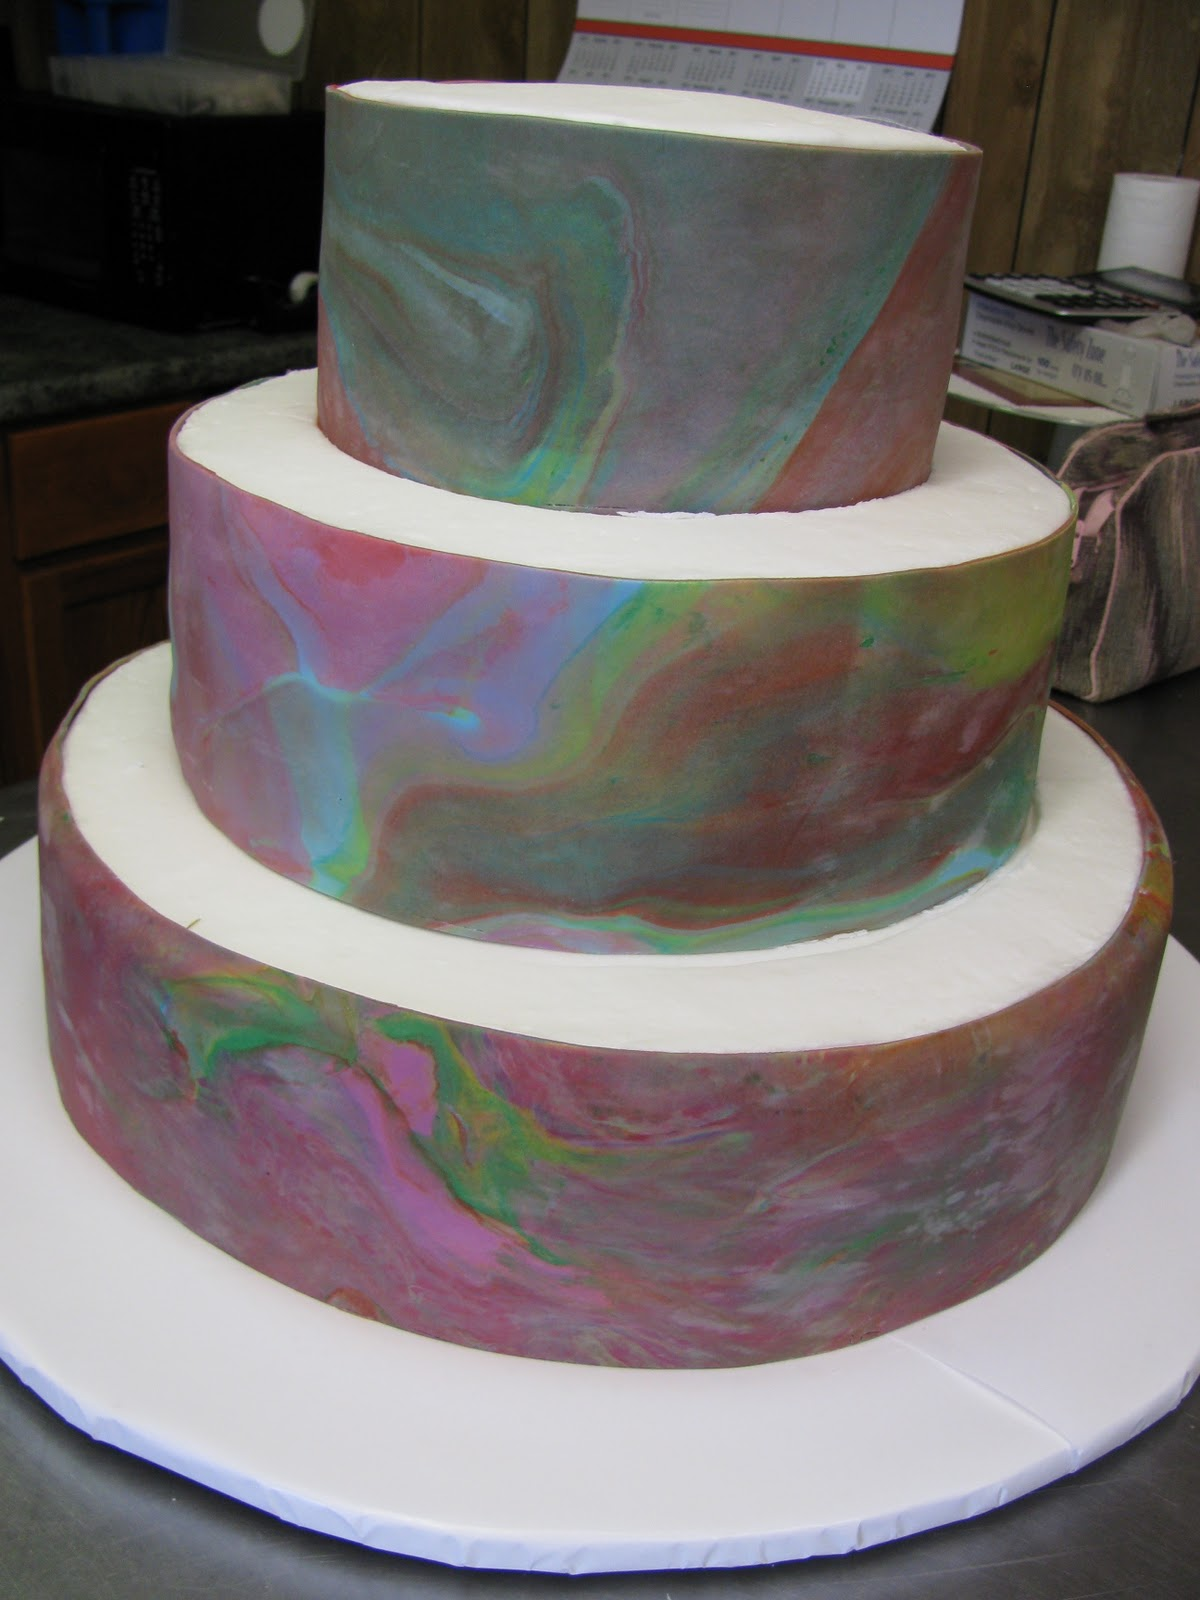 Cakes by diane drum cake for Bakery crafts sps tier system